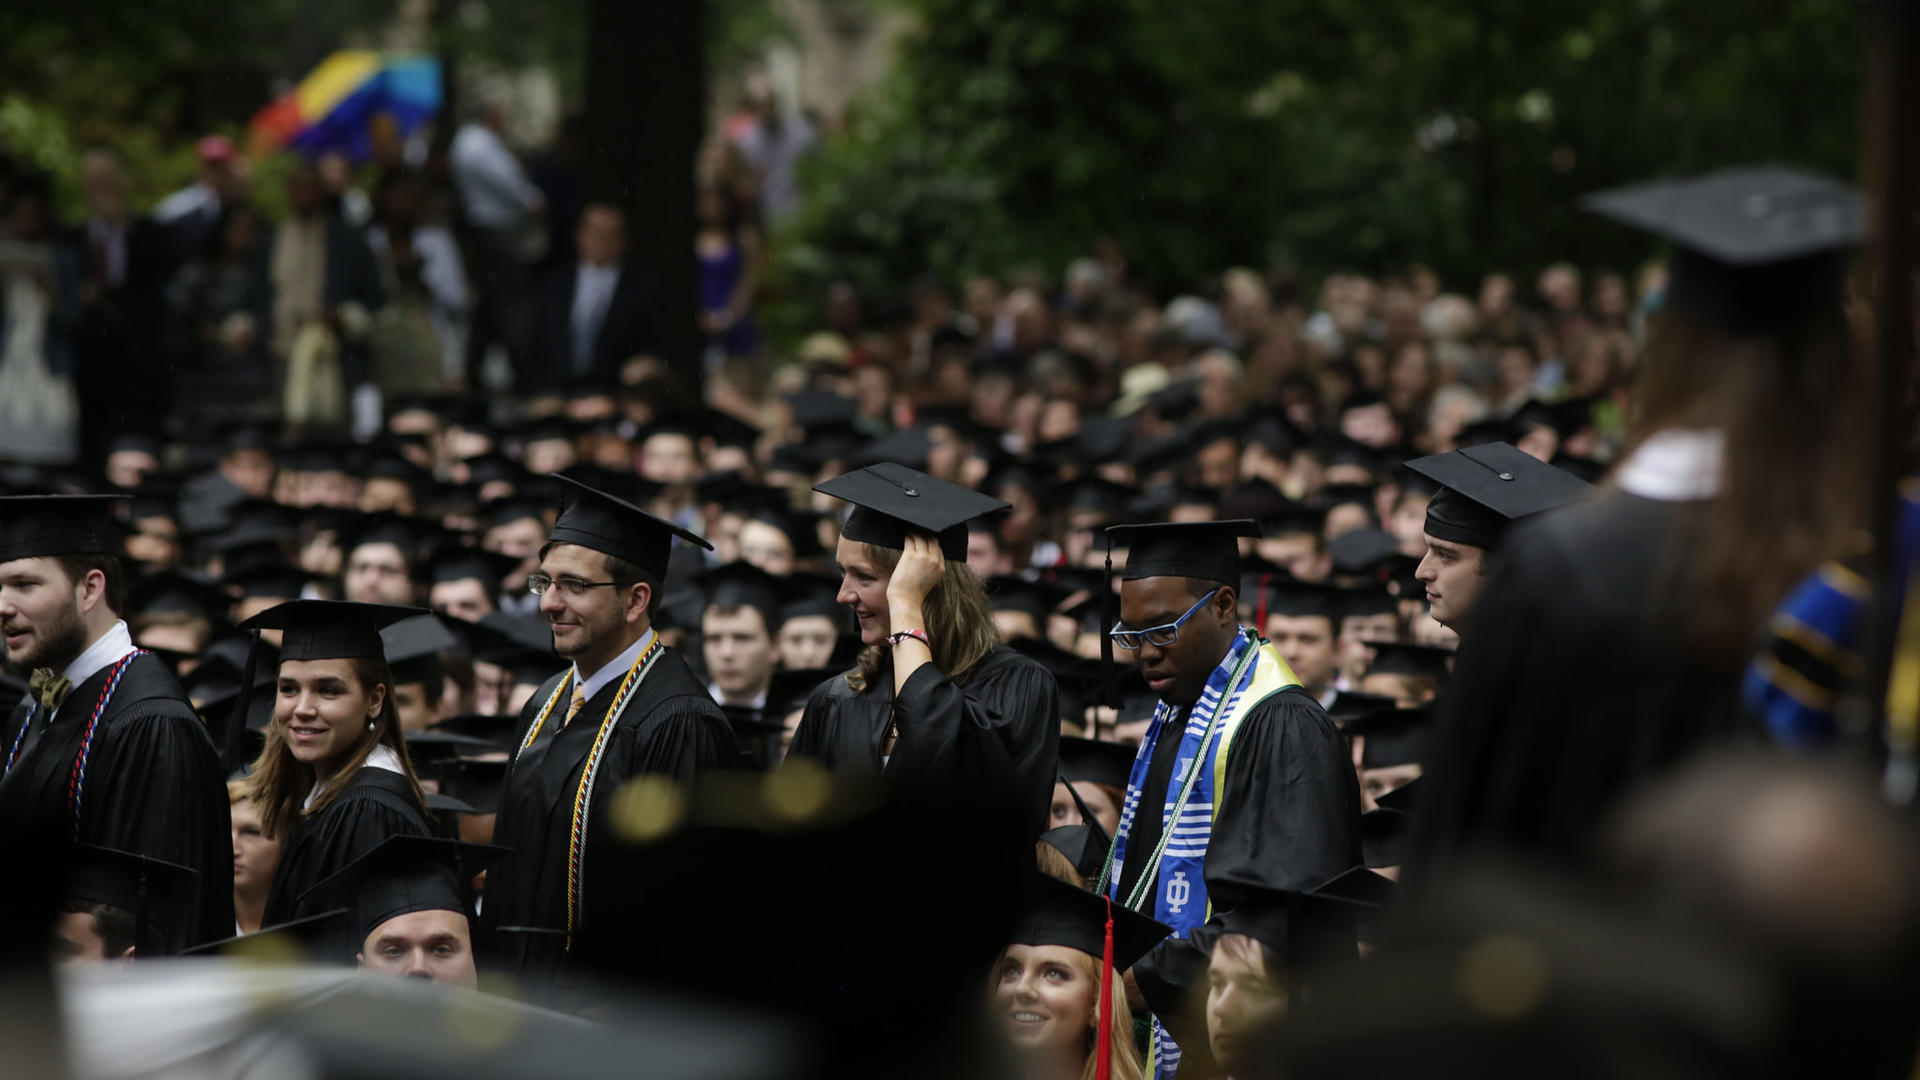 A procession of graduates in their caps and gowns make their way among the rows of seated graduates